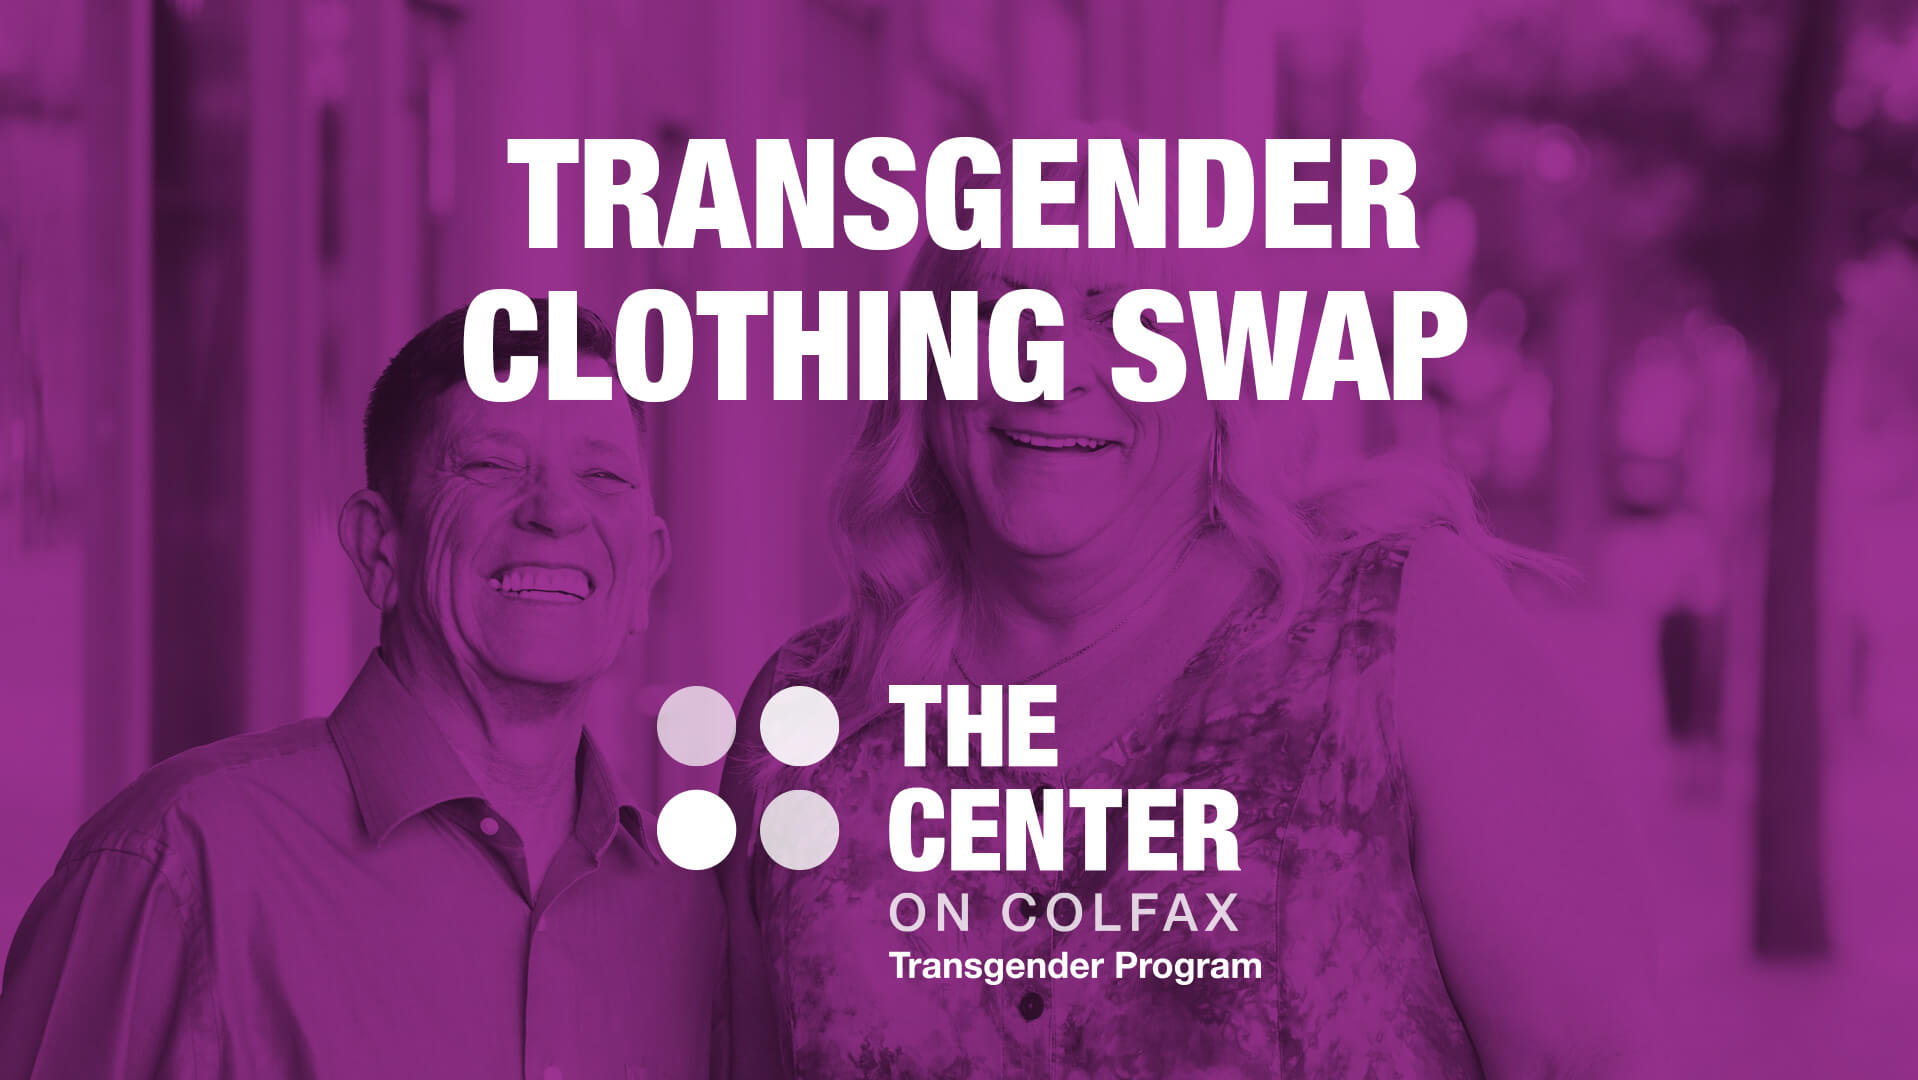 Transgender Clothing Swap (Transgender Program) | The Center